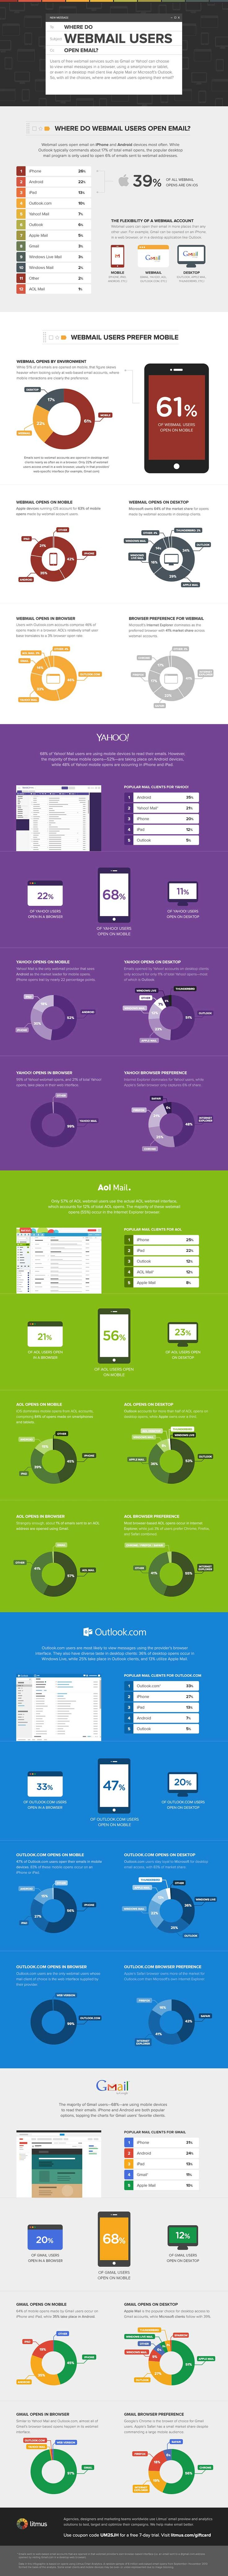 Why Mobile Email Marketing is No Longer Optional